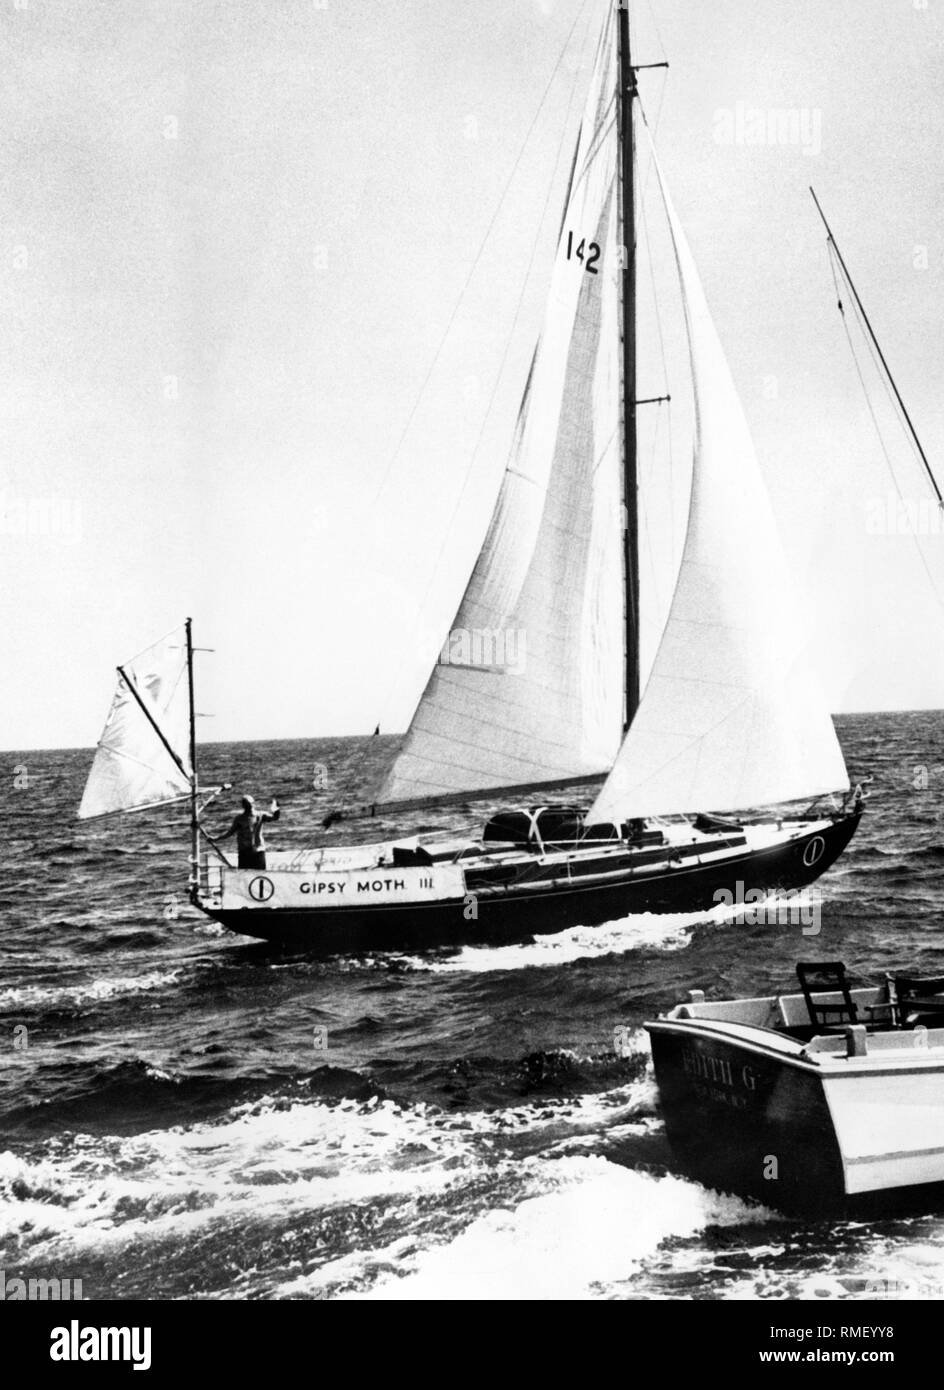 Francis Chichester Sails With His Boat The Gipsy Moth Stock